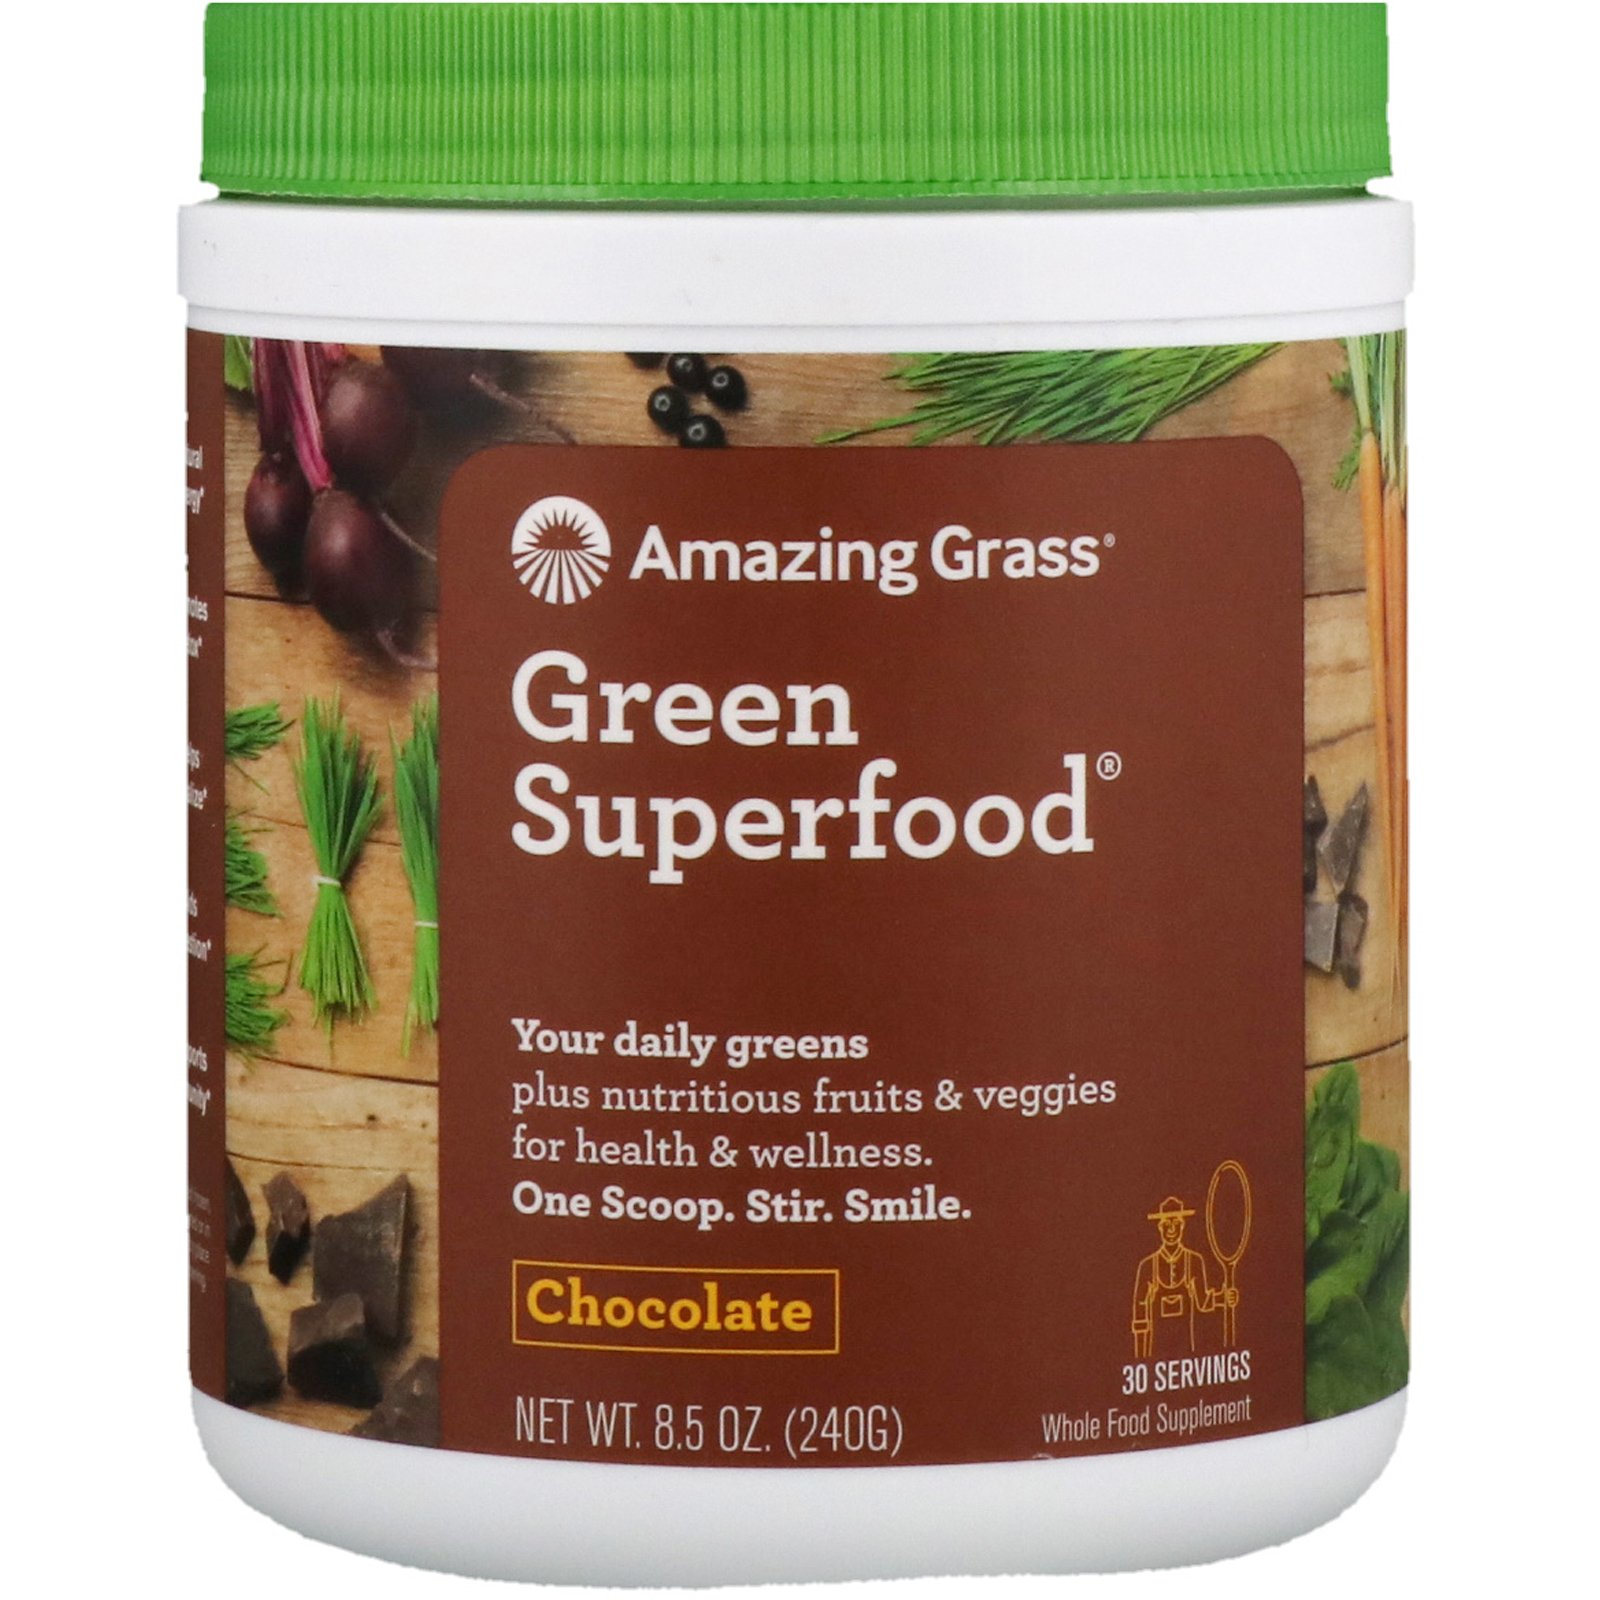 Details About Amazing Grass Green Superfood Chocolate Drink Powder 8 5 Oz 240 G All Natural